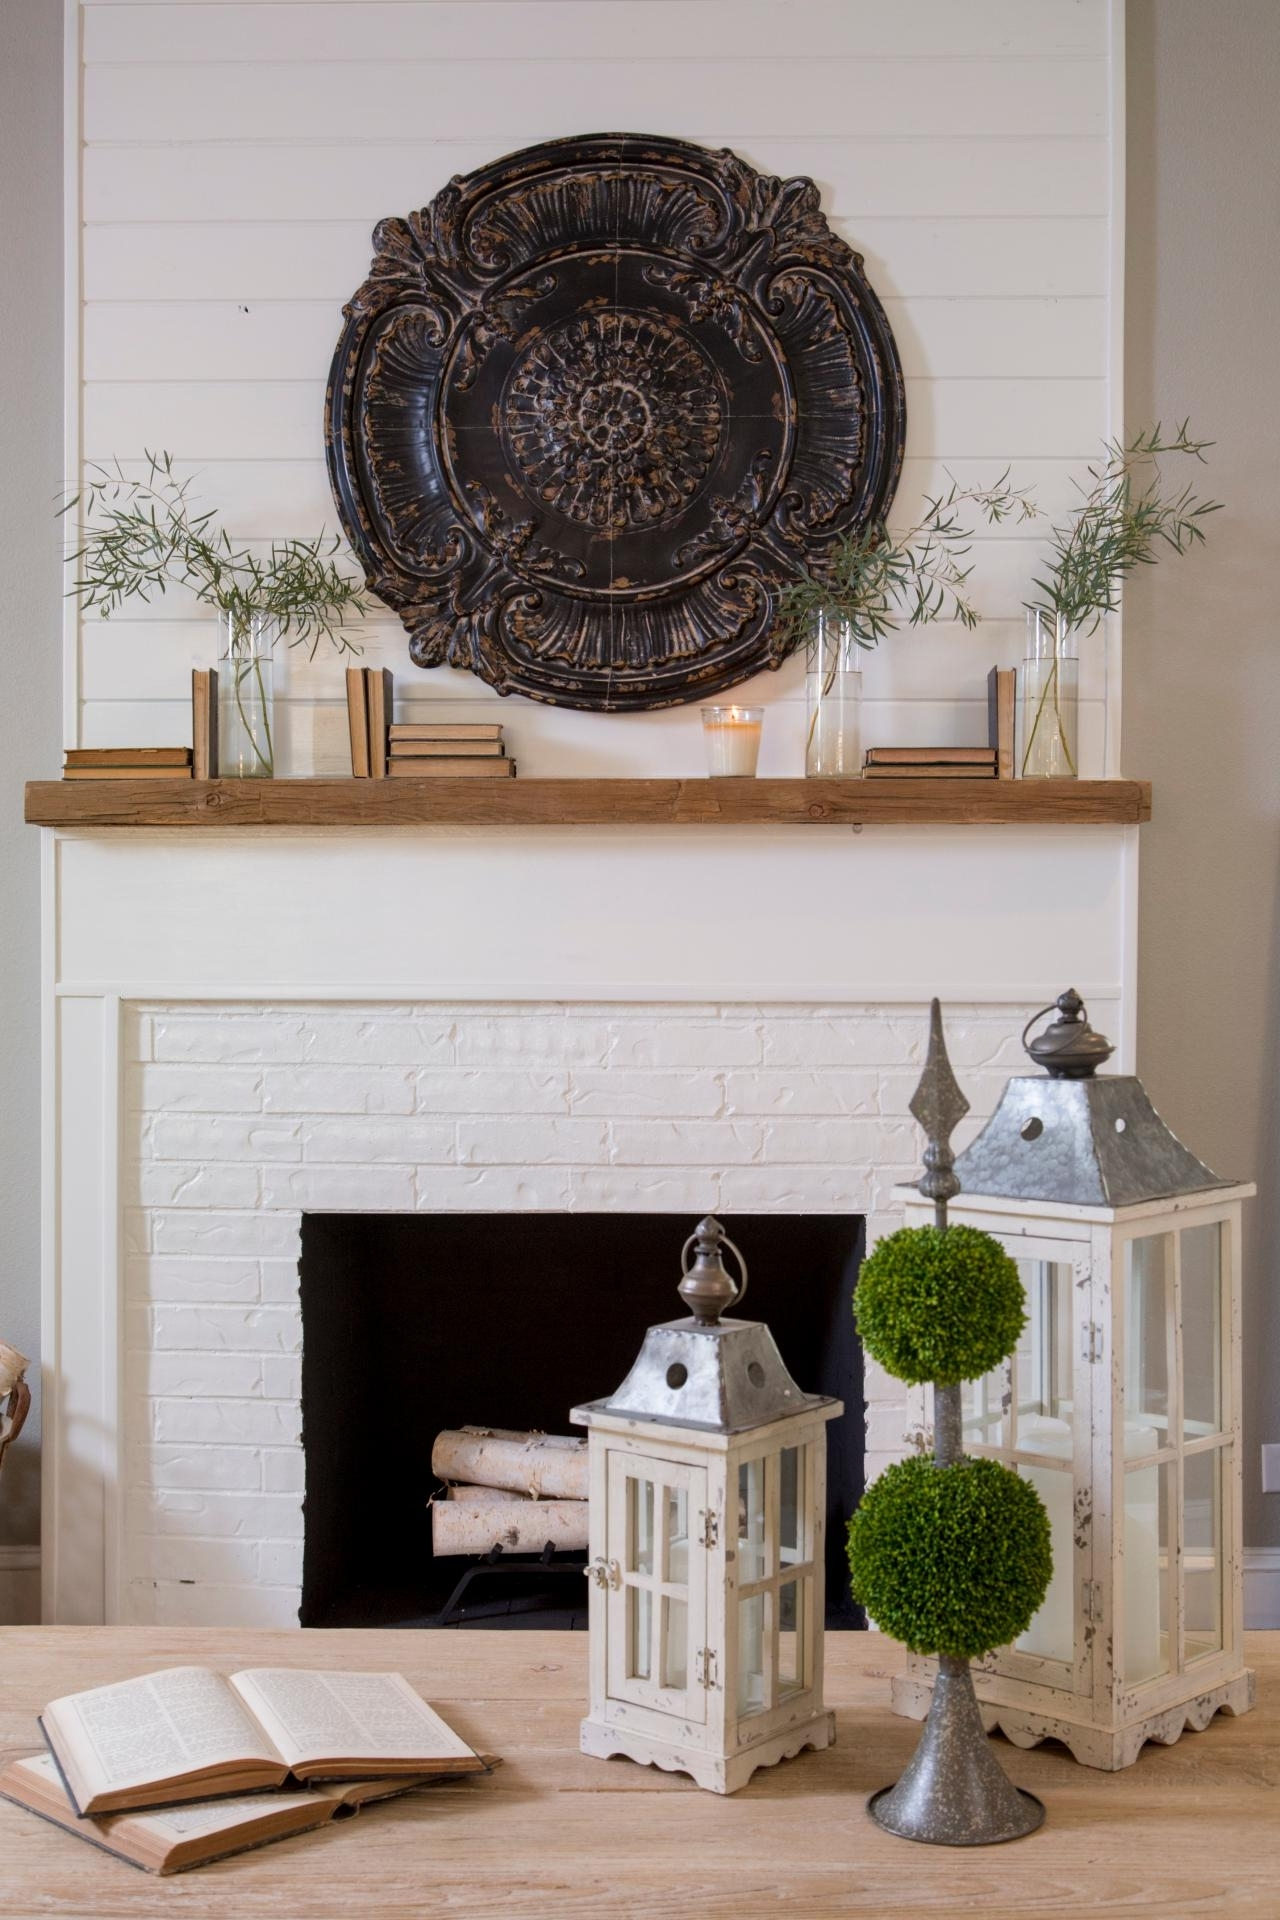 Hgtv's Decorating & Design Blog (View 7 of 15)